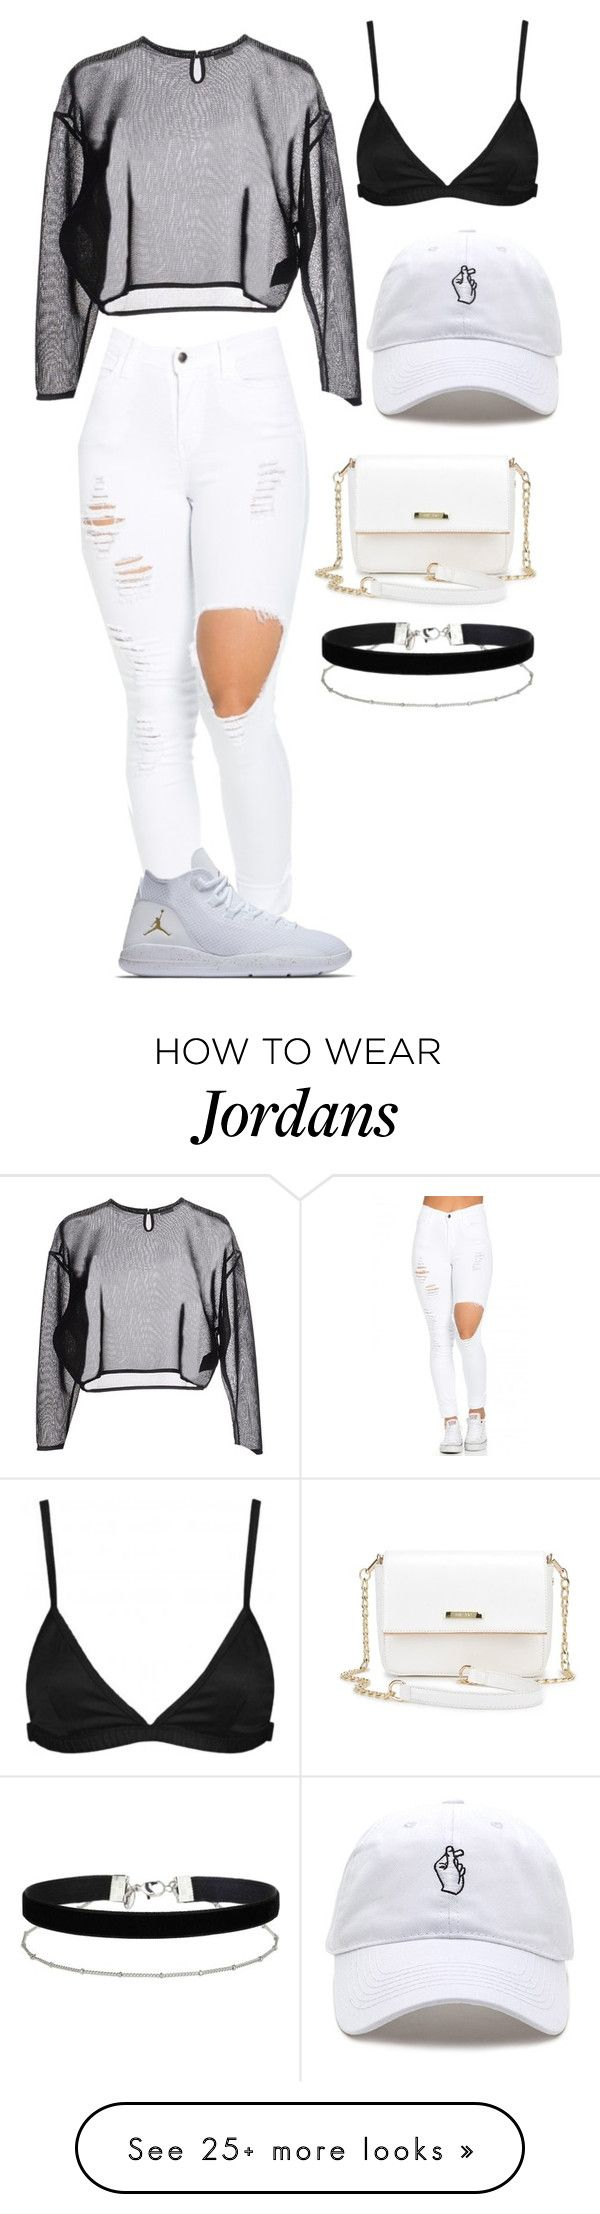 """Untitled #569"" by madelin-ruby on Polyvore featuring Yves Saint Laurent, Lavish Alice, NIKE and Miss Selfridge"